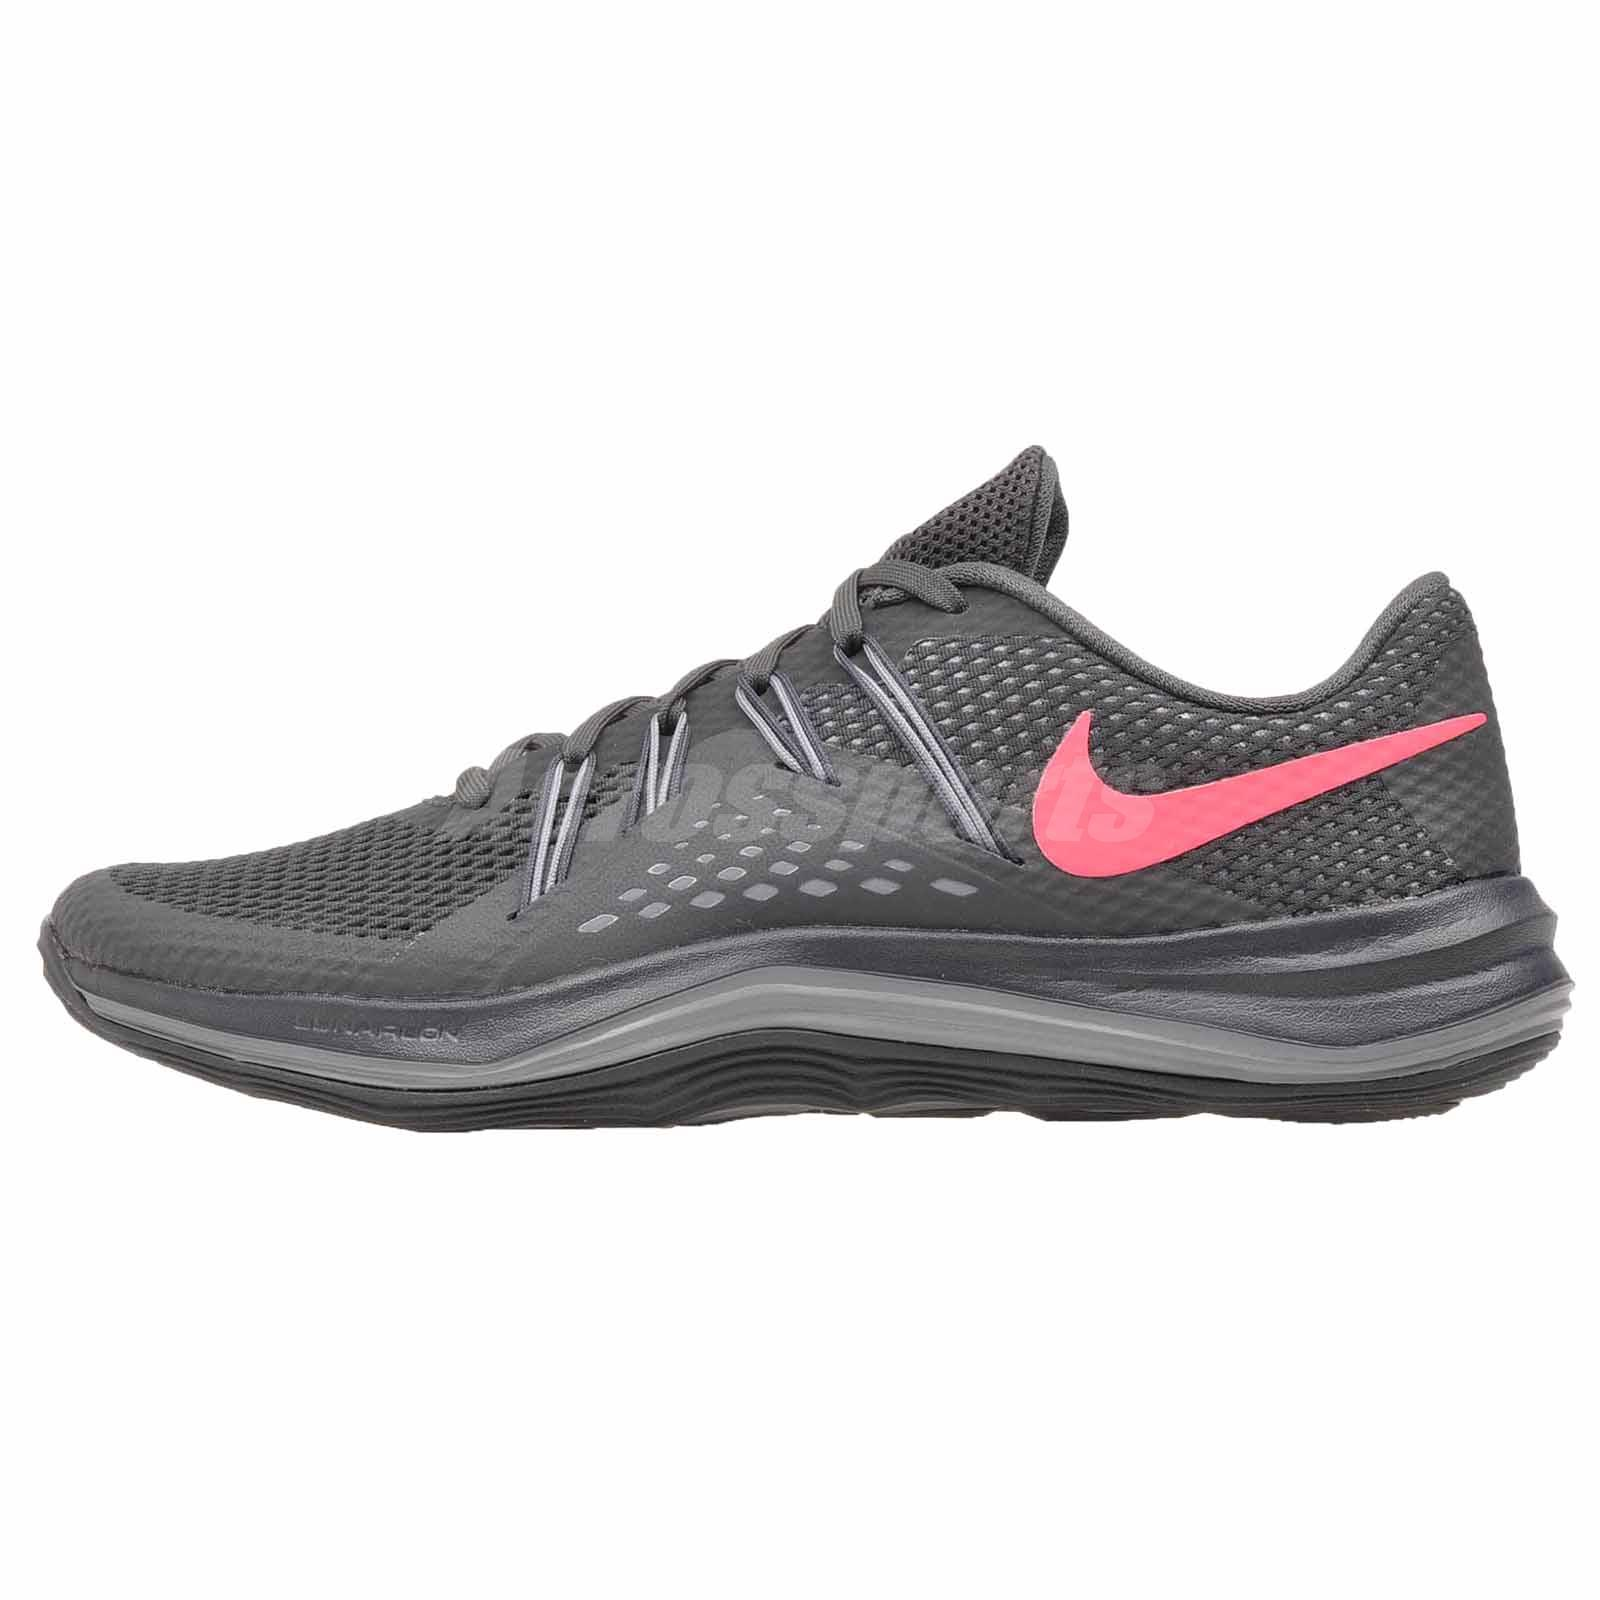 4488ad81743b Details about Nike Wmns Womens Lunar Exceed TR Cross Training Shoes  Anthracite 909017-012